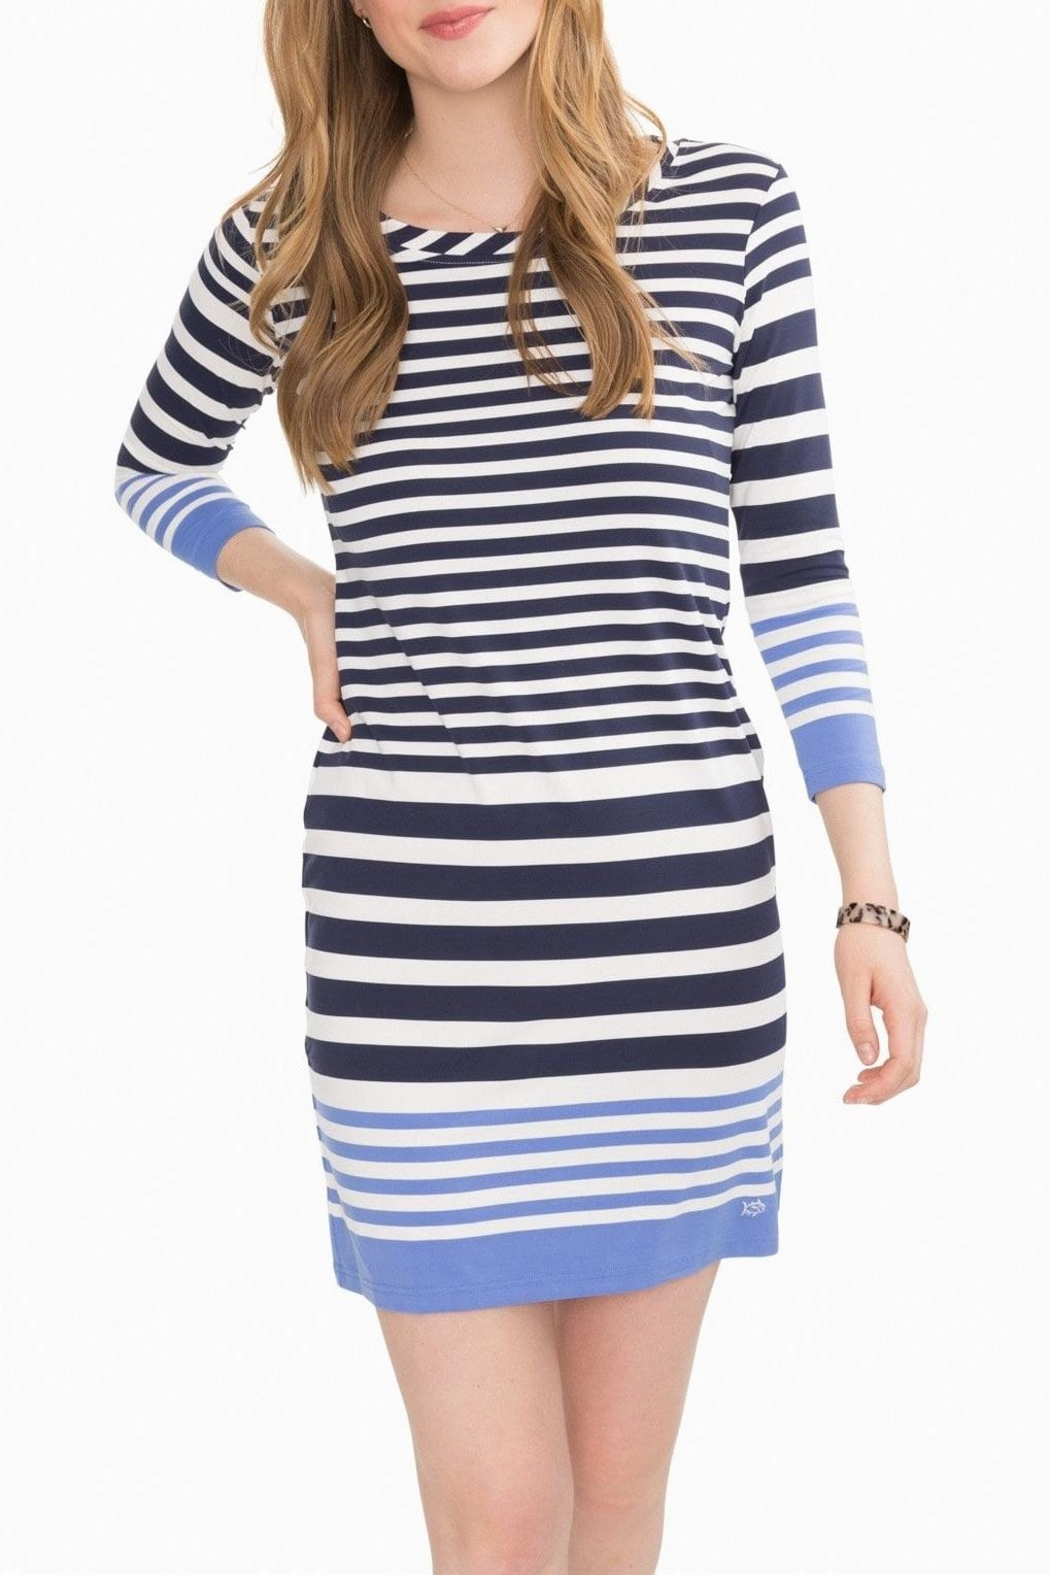 Southern Tide Camille Performance Dress - Main Image